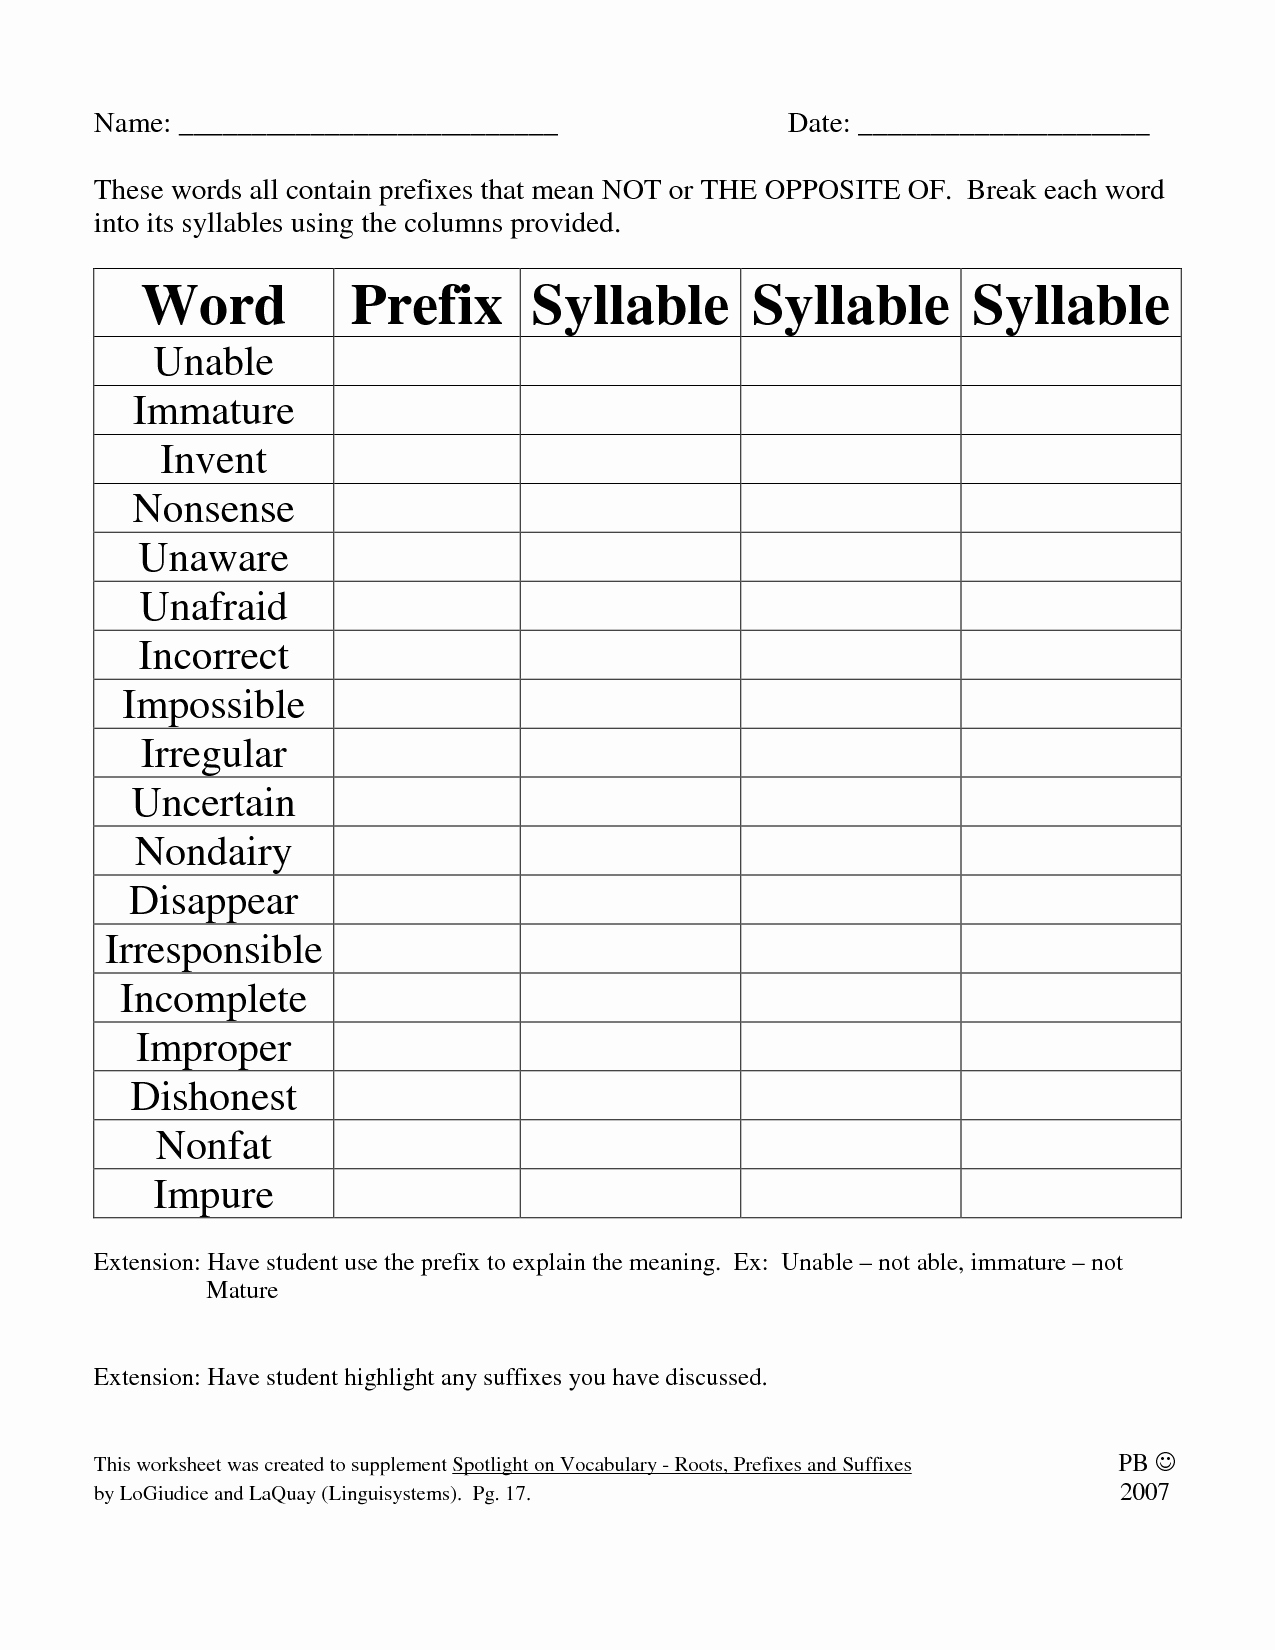 Suffix Worksheets for 4th Grade Awesome 15 Best Of Mon Suffixes Worksheets Prefixes